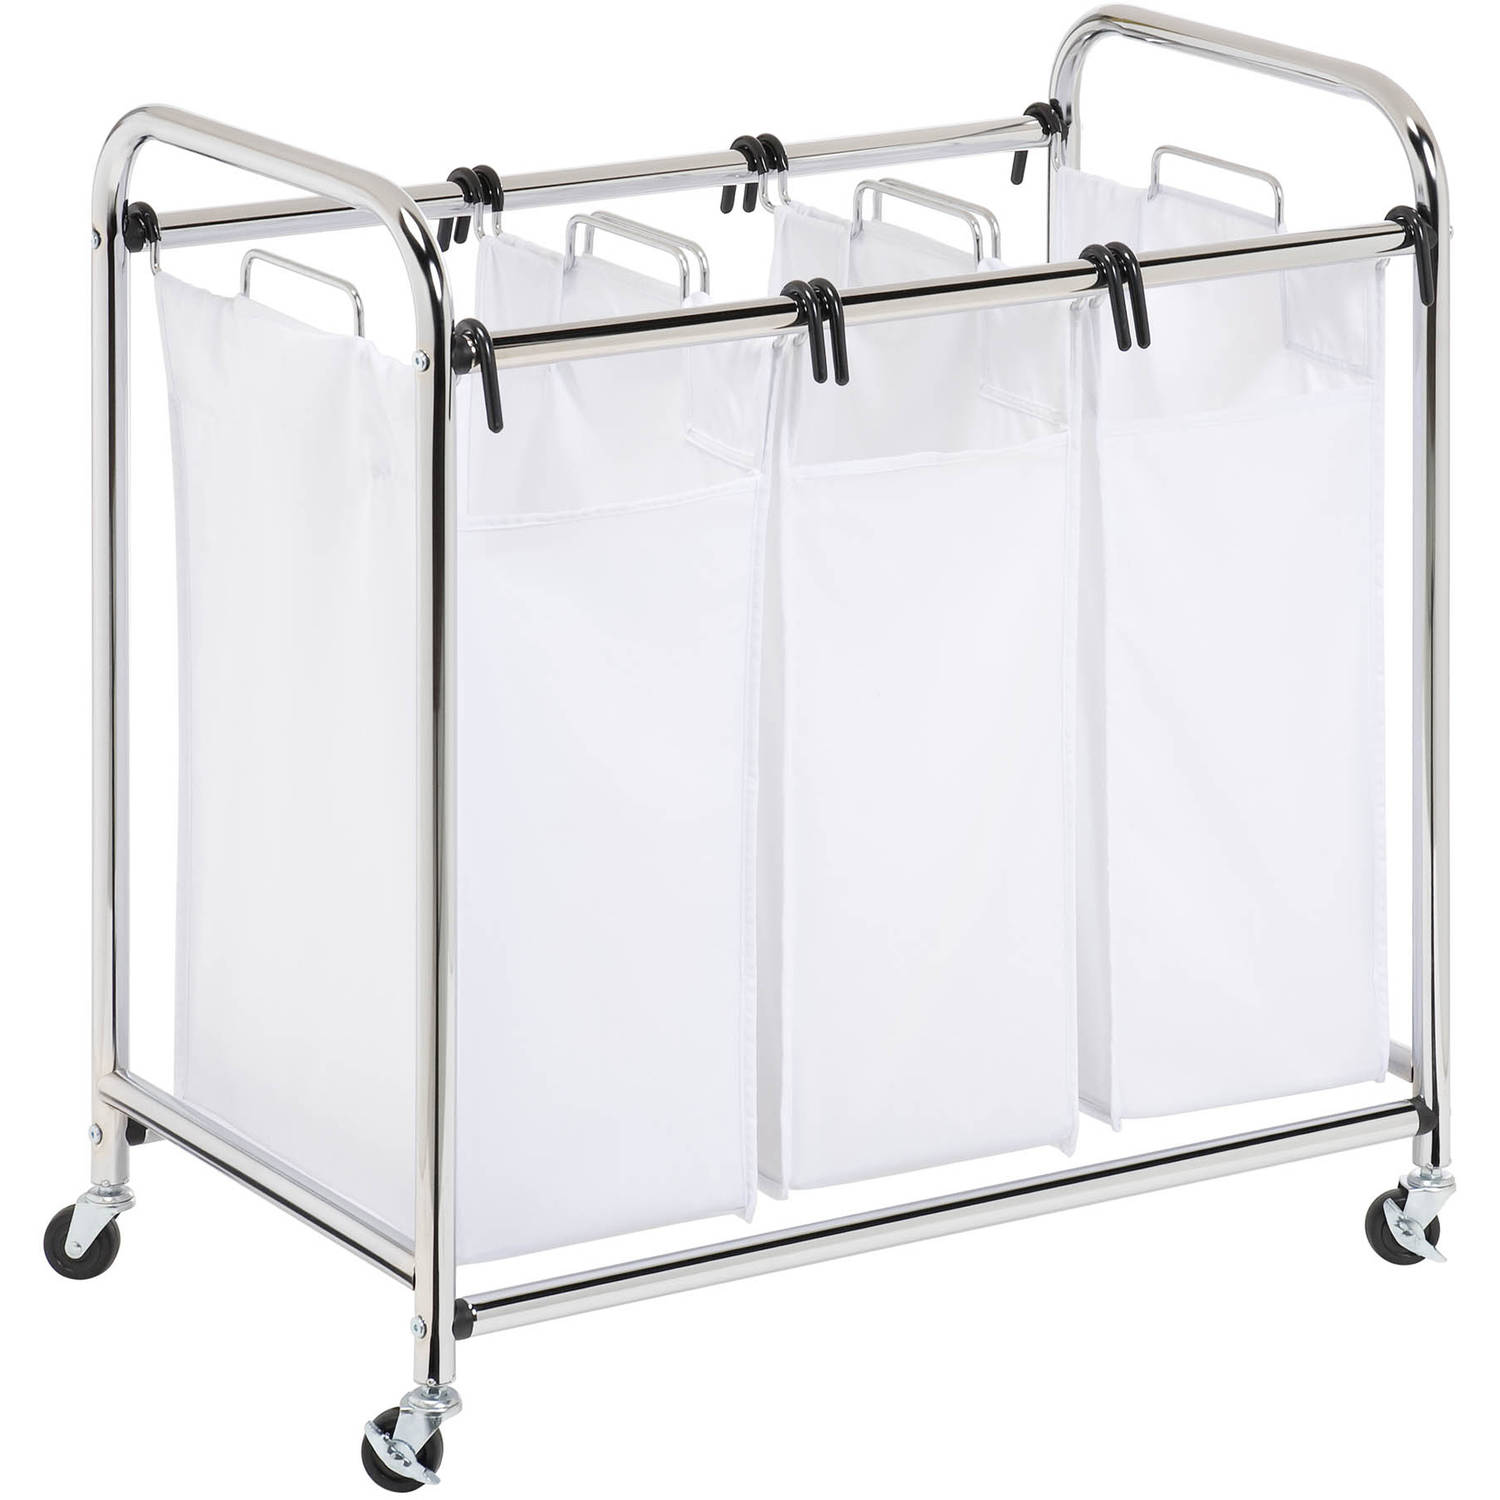 Honey Can Do Commercial Grade Triple Laundry Sorter Chrome White